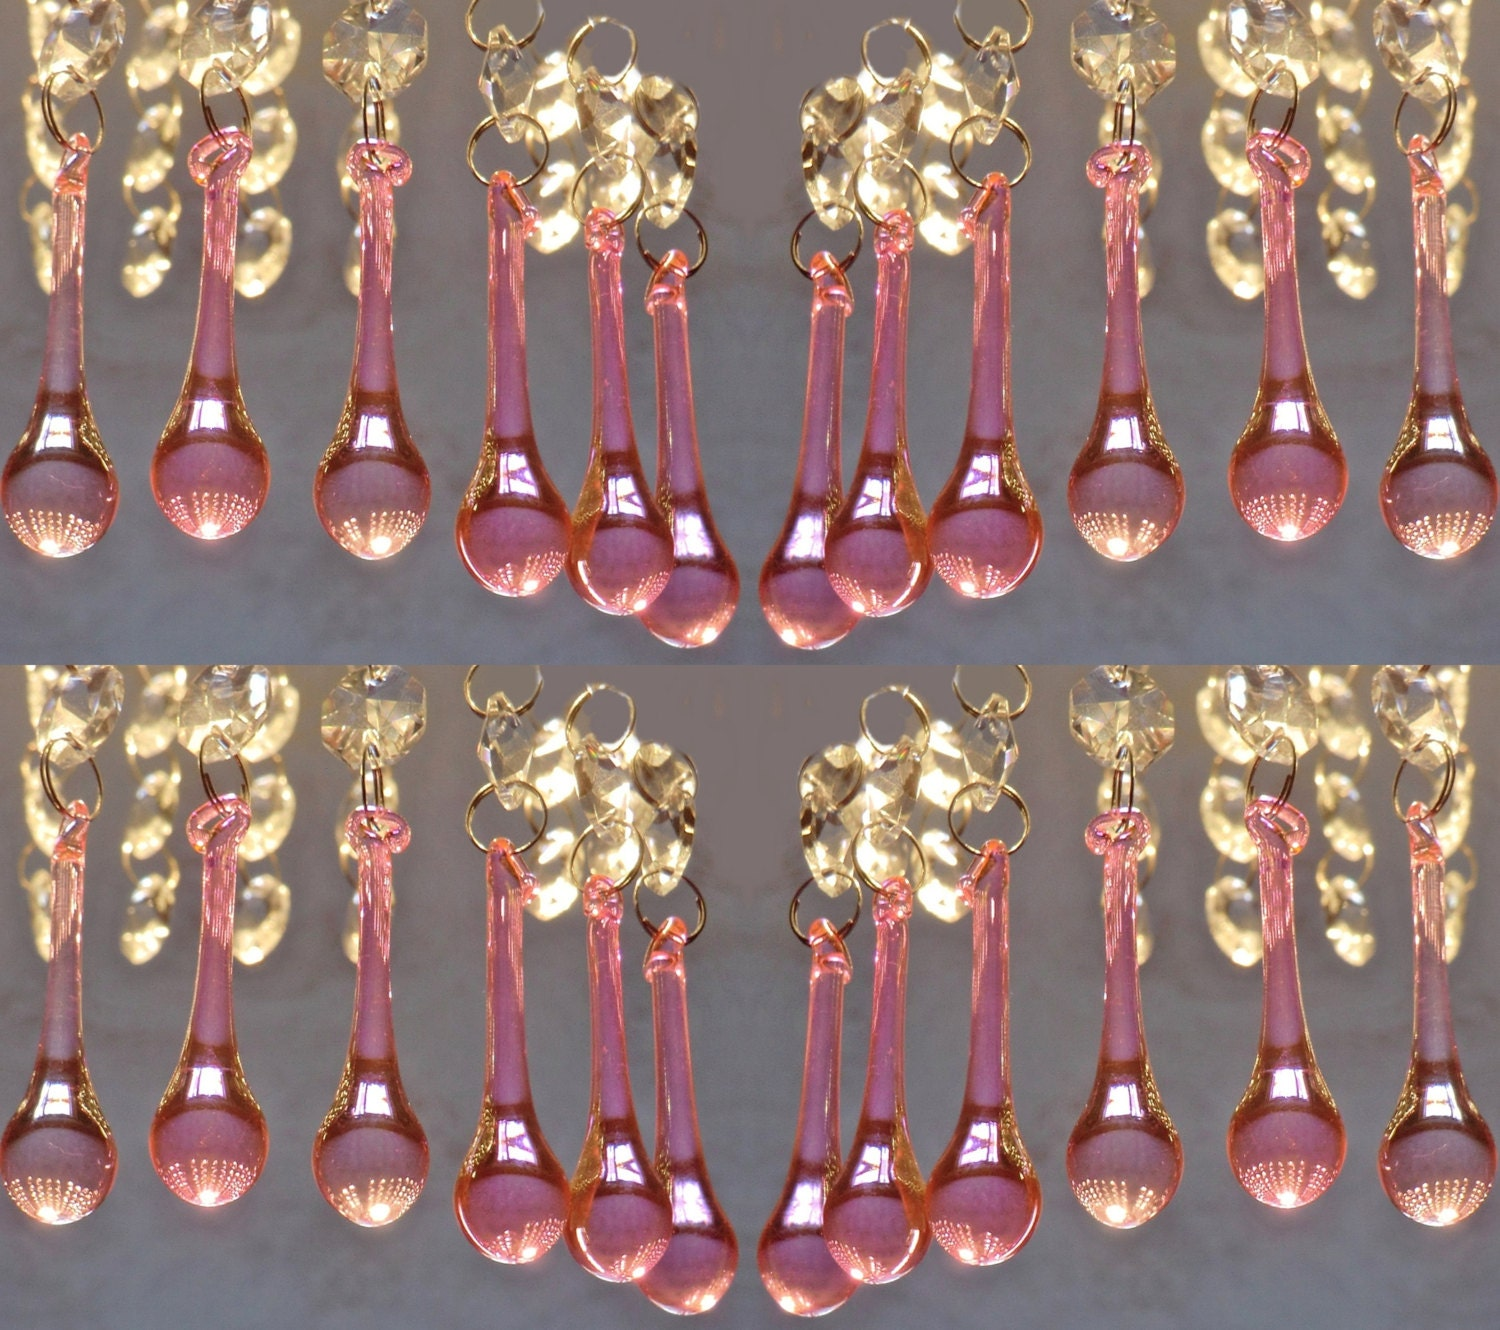 24 hot pink chandelier drops glass crystals shabby droplets chic 24 hot pink chandelier drops glass crystals shabby droplets chic orb drop prisms vintage christmas tree wedding decoration light parts beads mozeypictures